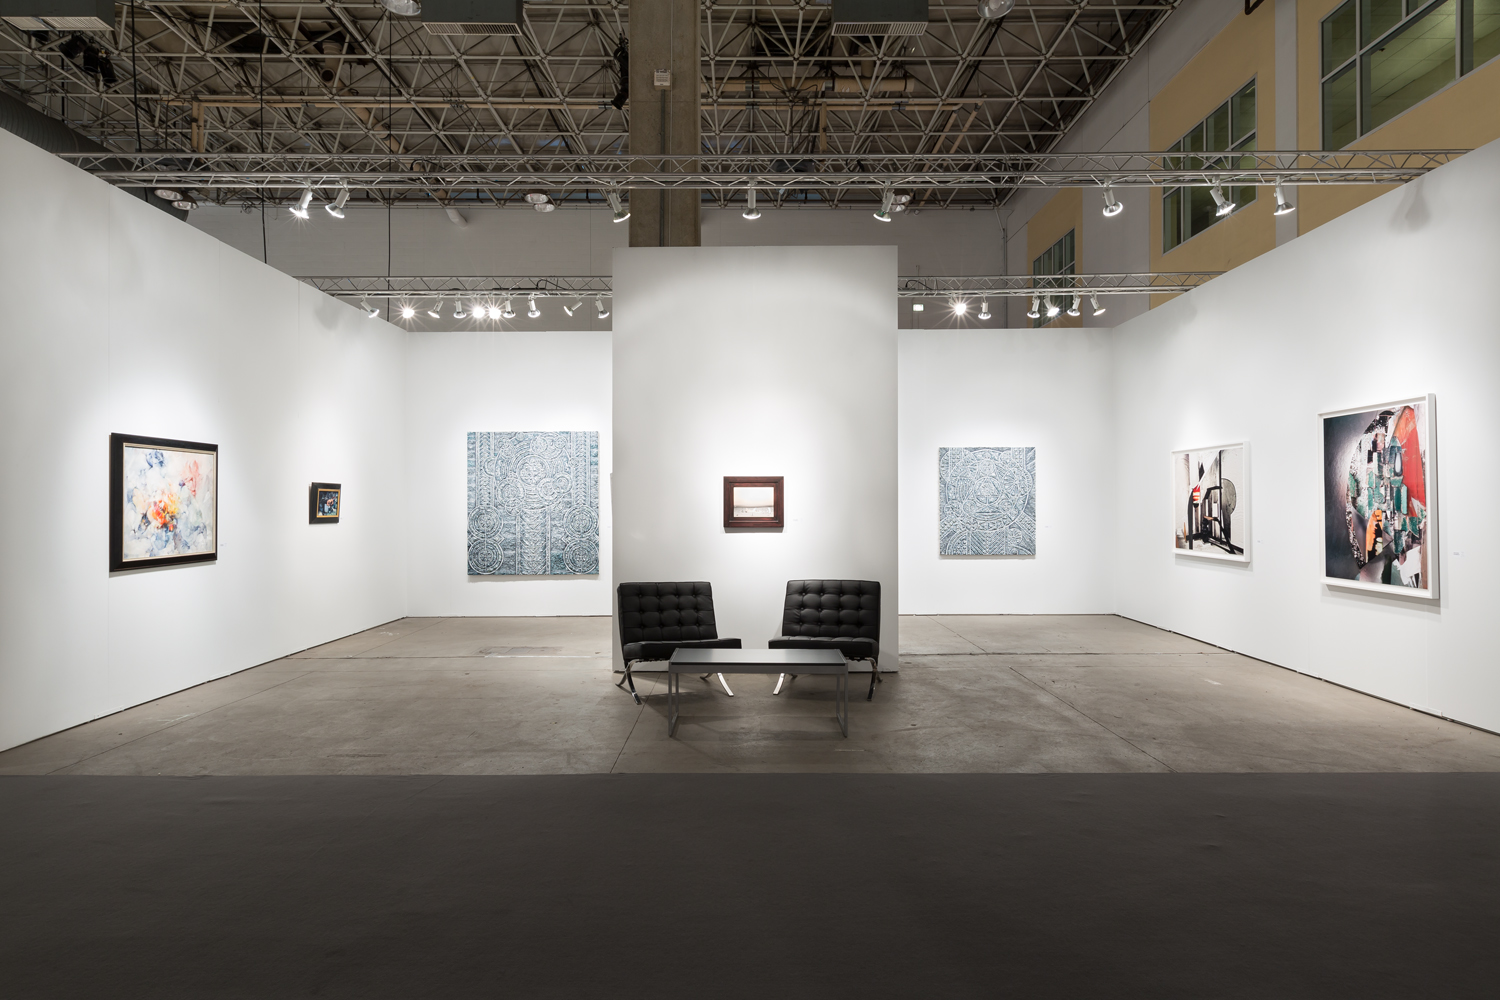 EXPO Chicago 2014,  installation view, Navy Pier, 600 E Grand Ave, Chicago, IL 60611, Booth 325, September 18 - 21 , 2014